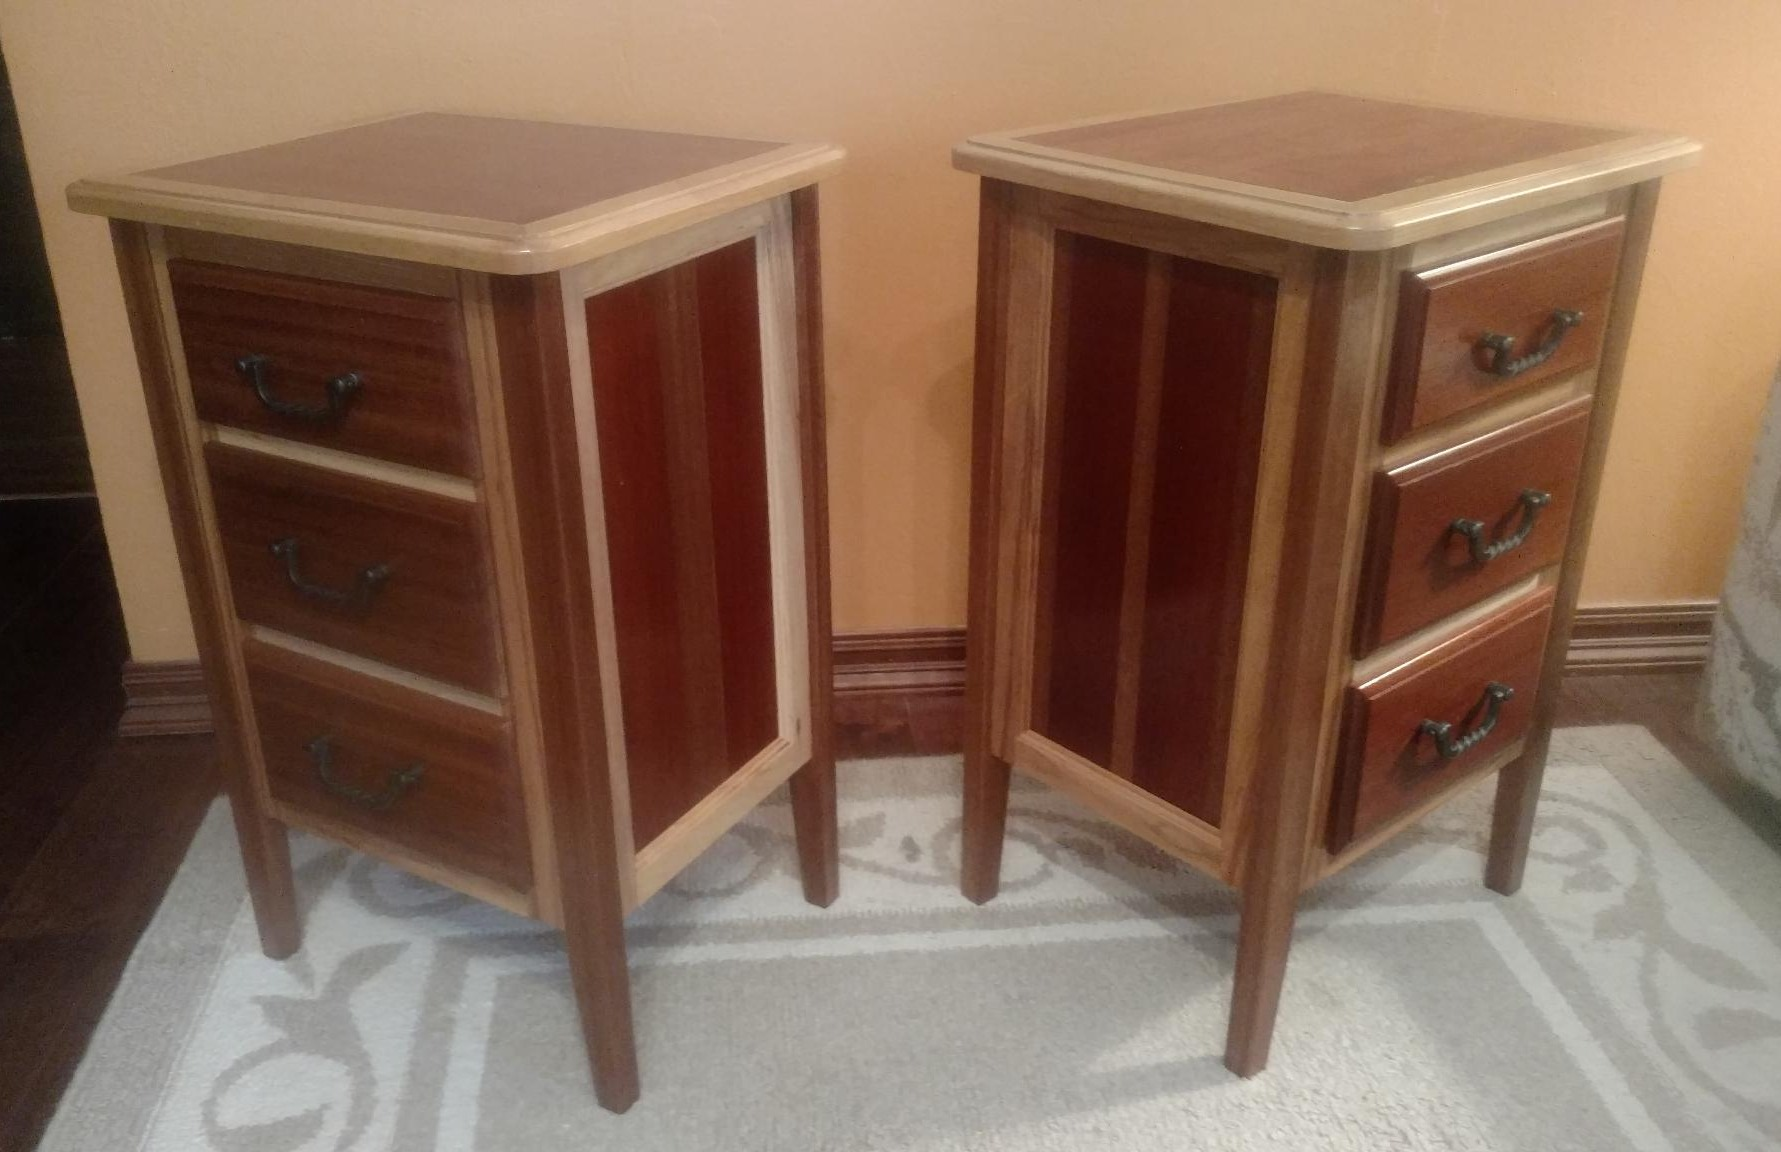 The end tables are made of mahogany and maple. The finish is clear satin lacquer.